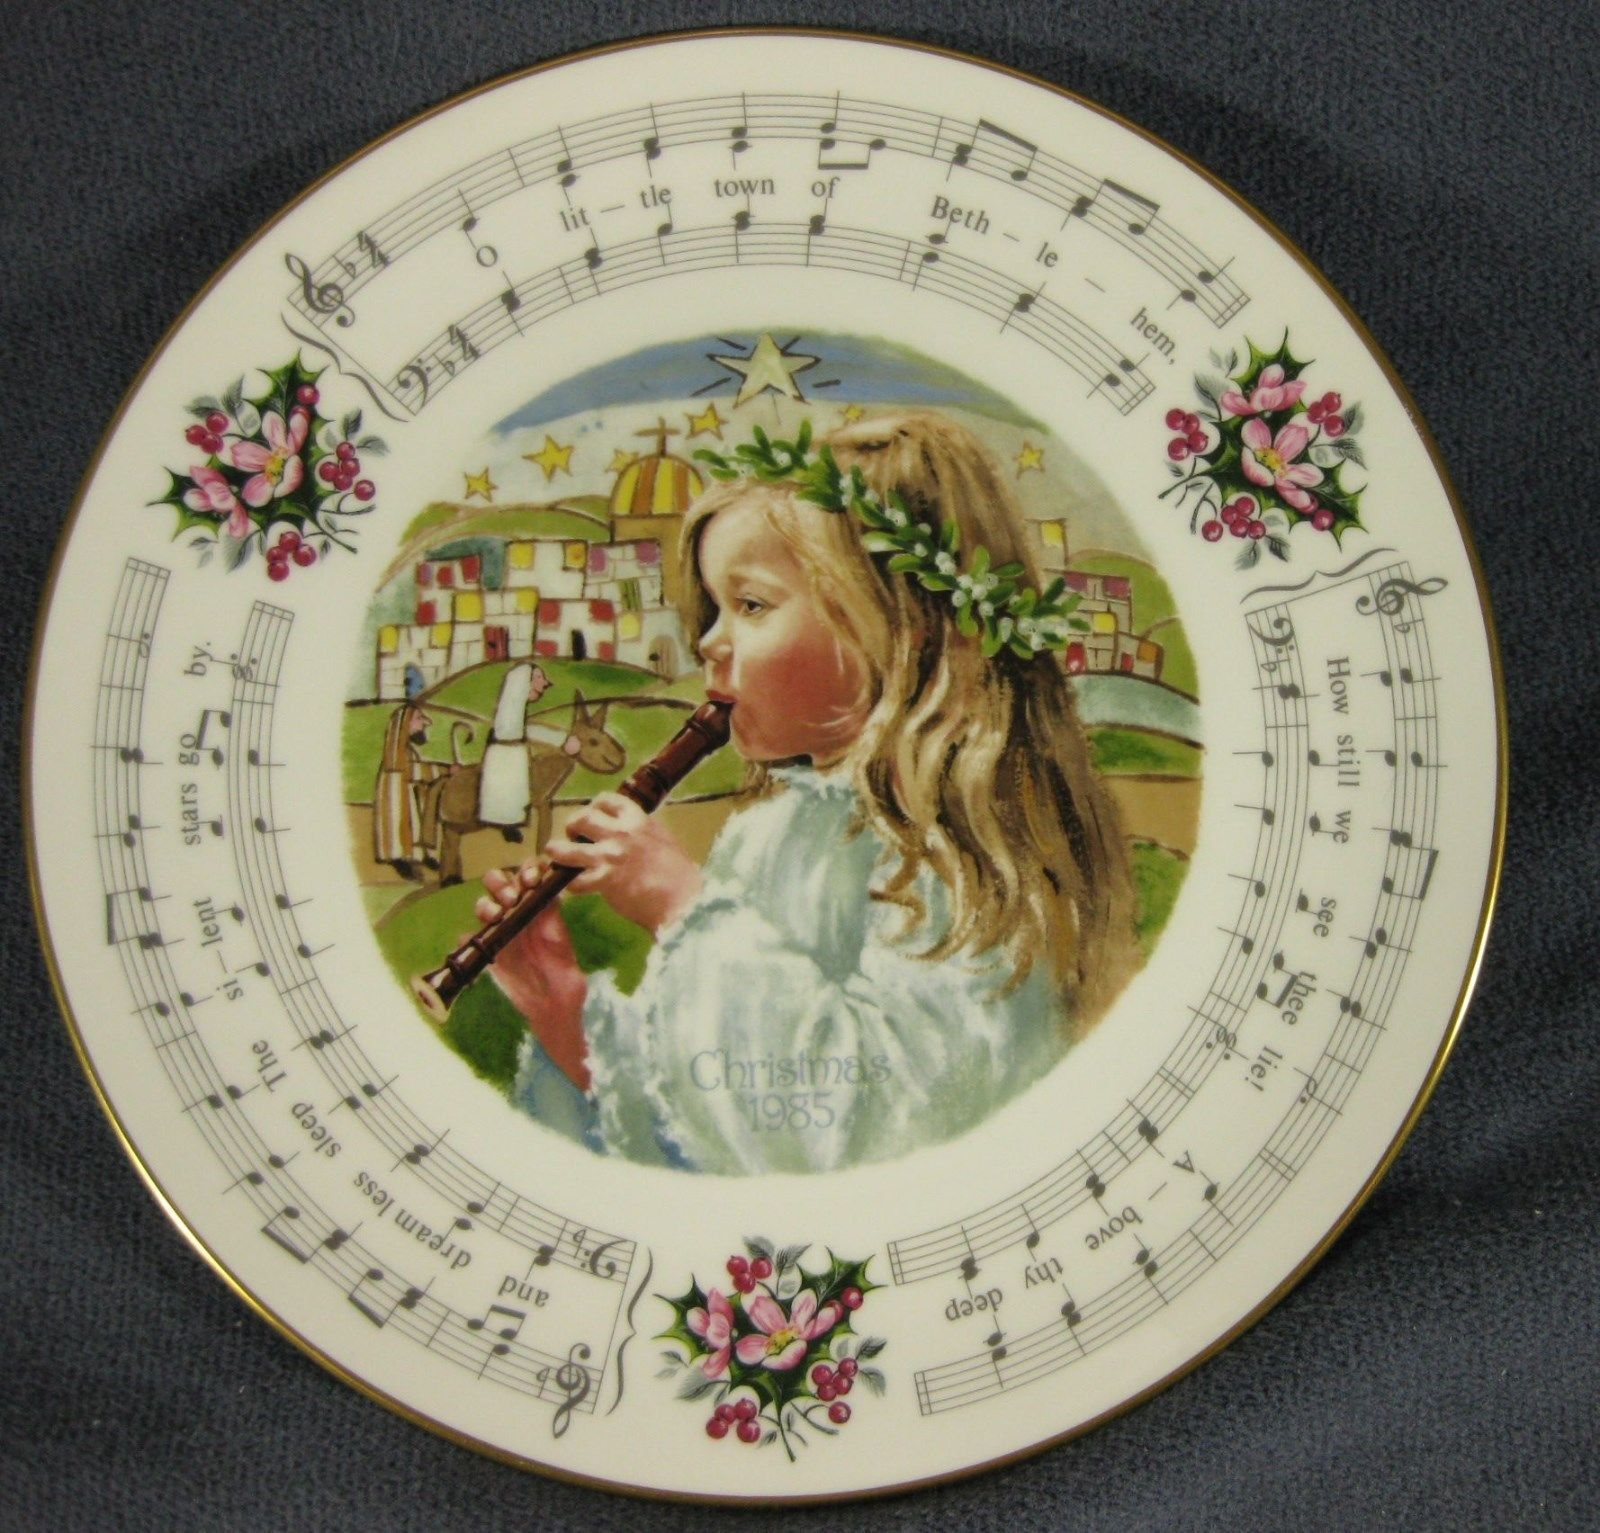 Primary image for Royal Doulton Little Town Of Bethlehem 1985 Christmas Carol Collector Plate